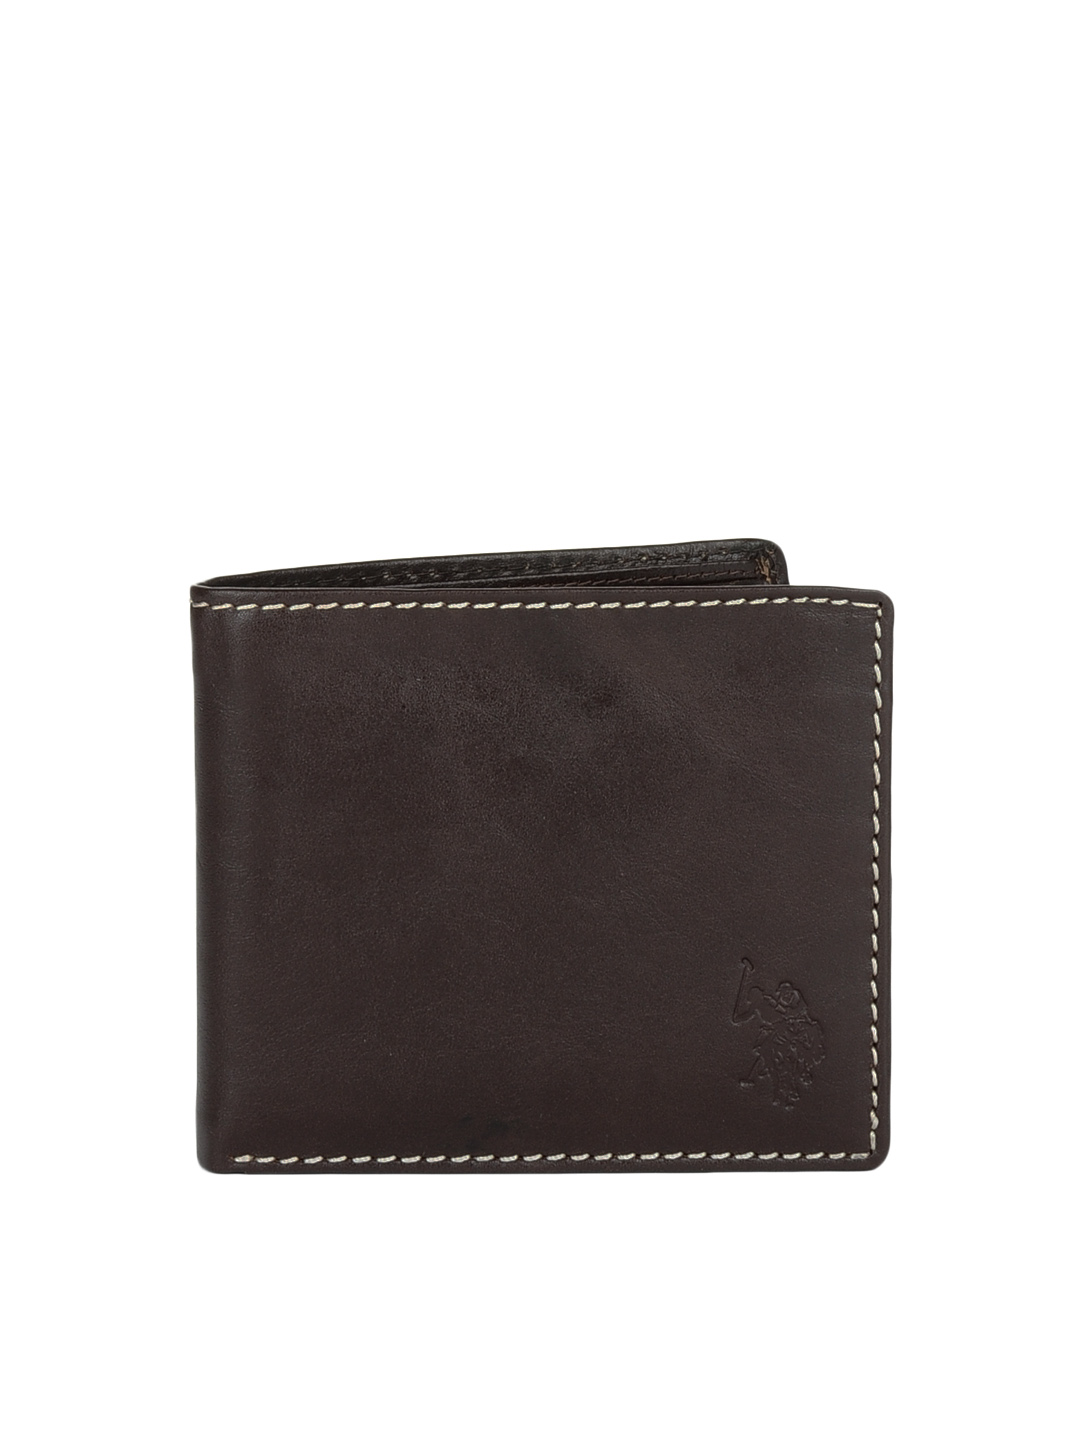 U.S. Polo Assn. Men Brown Wallet